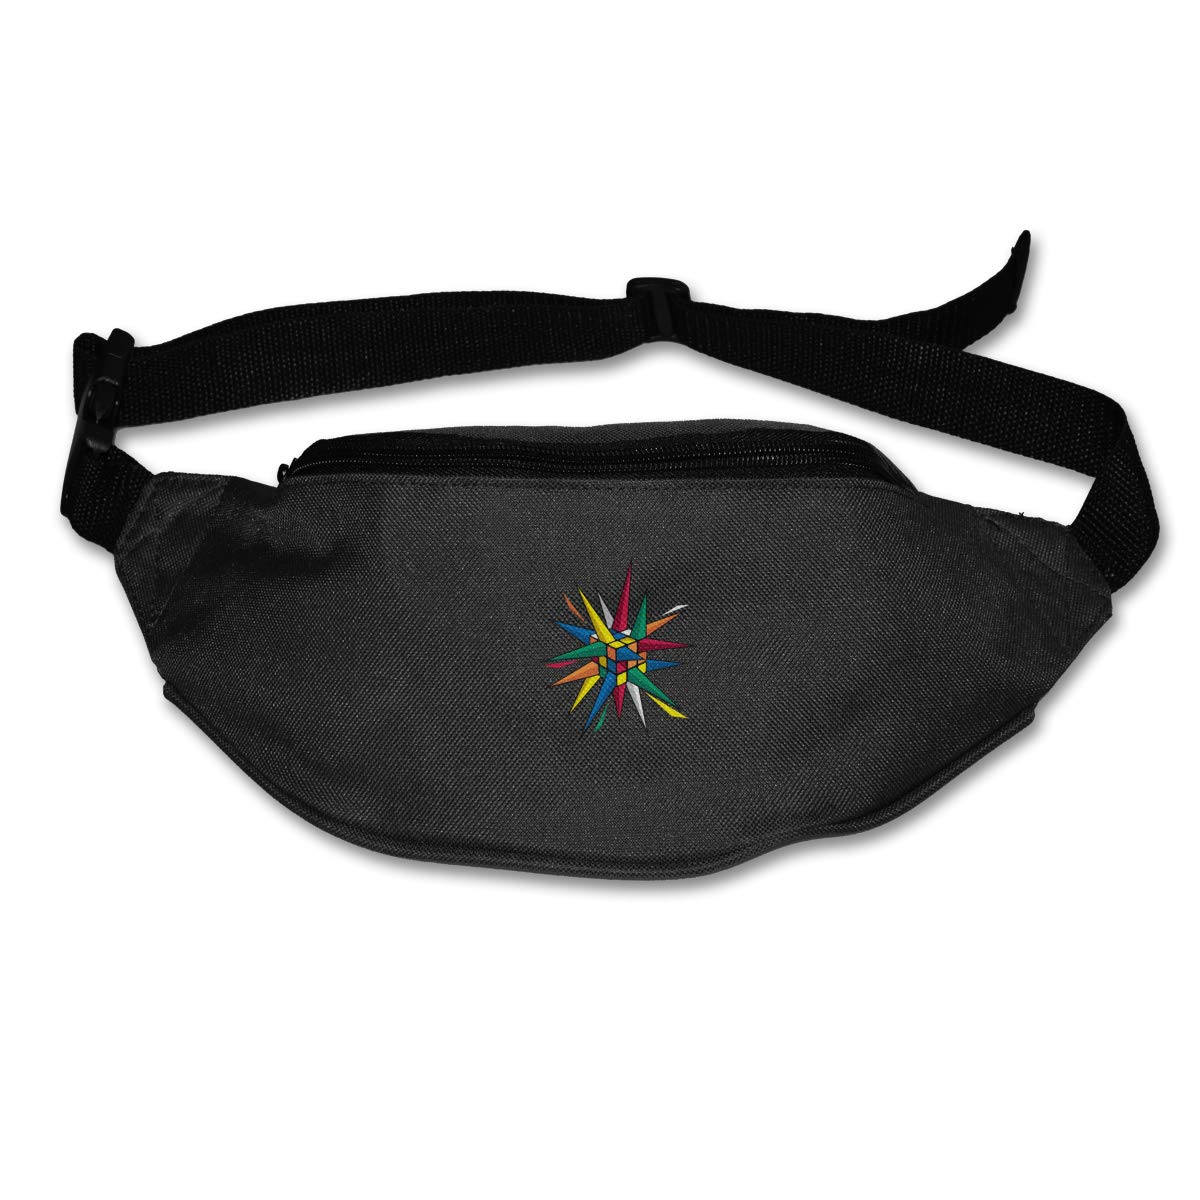 Cool Cube Sport Waist Bag Fanny Pack Adjustable For Run